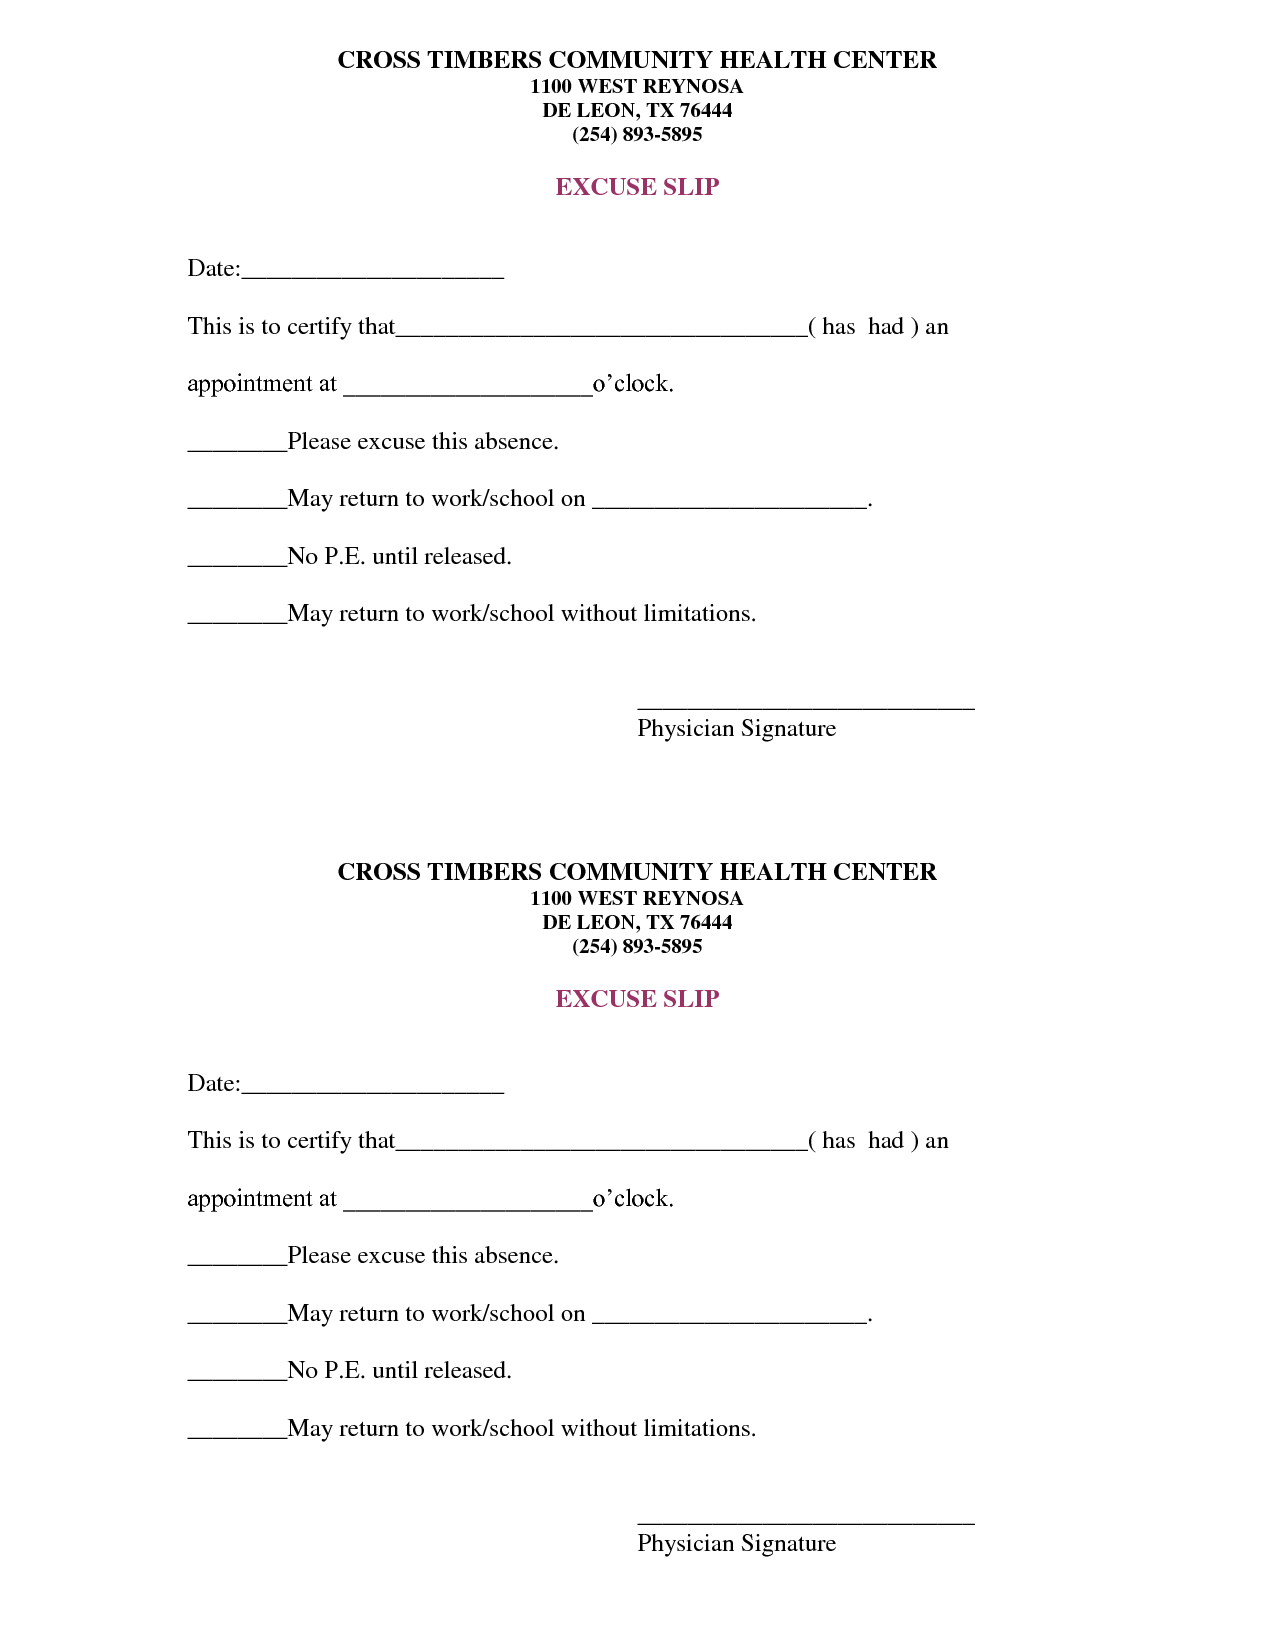 Free Doctors Note Template | Scope Of Work Template | On The Run - Free Printable Doctors Excuse